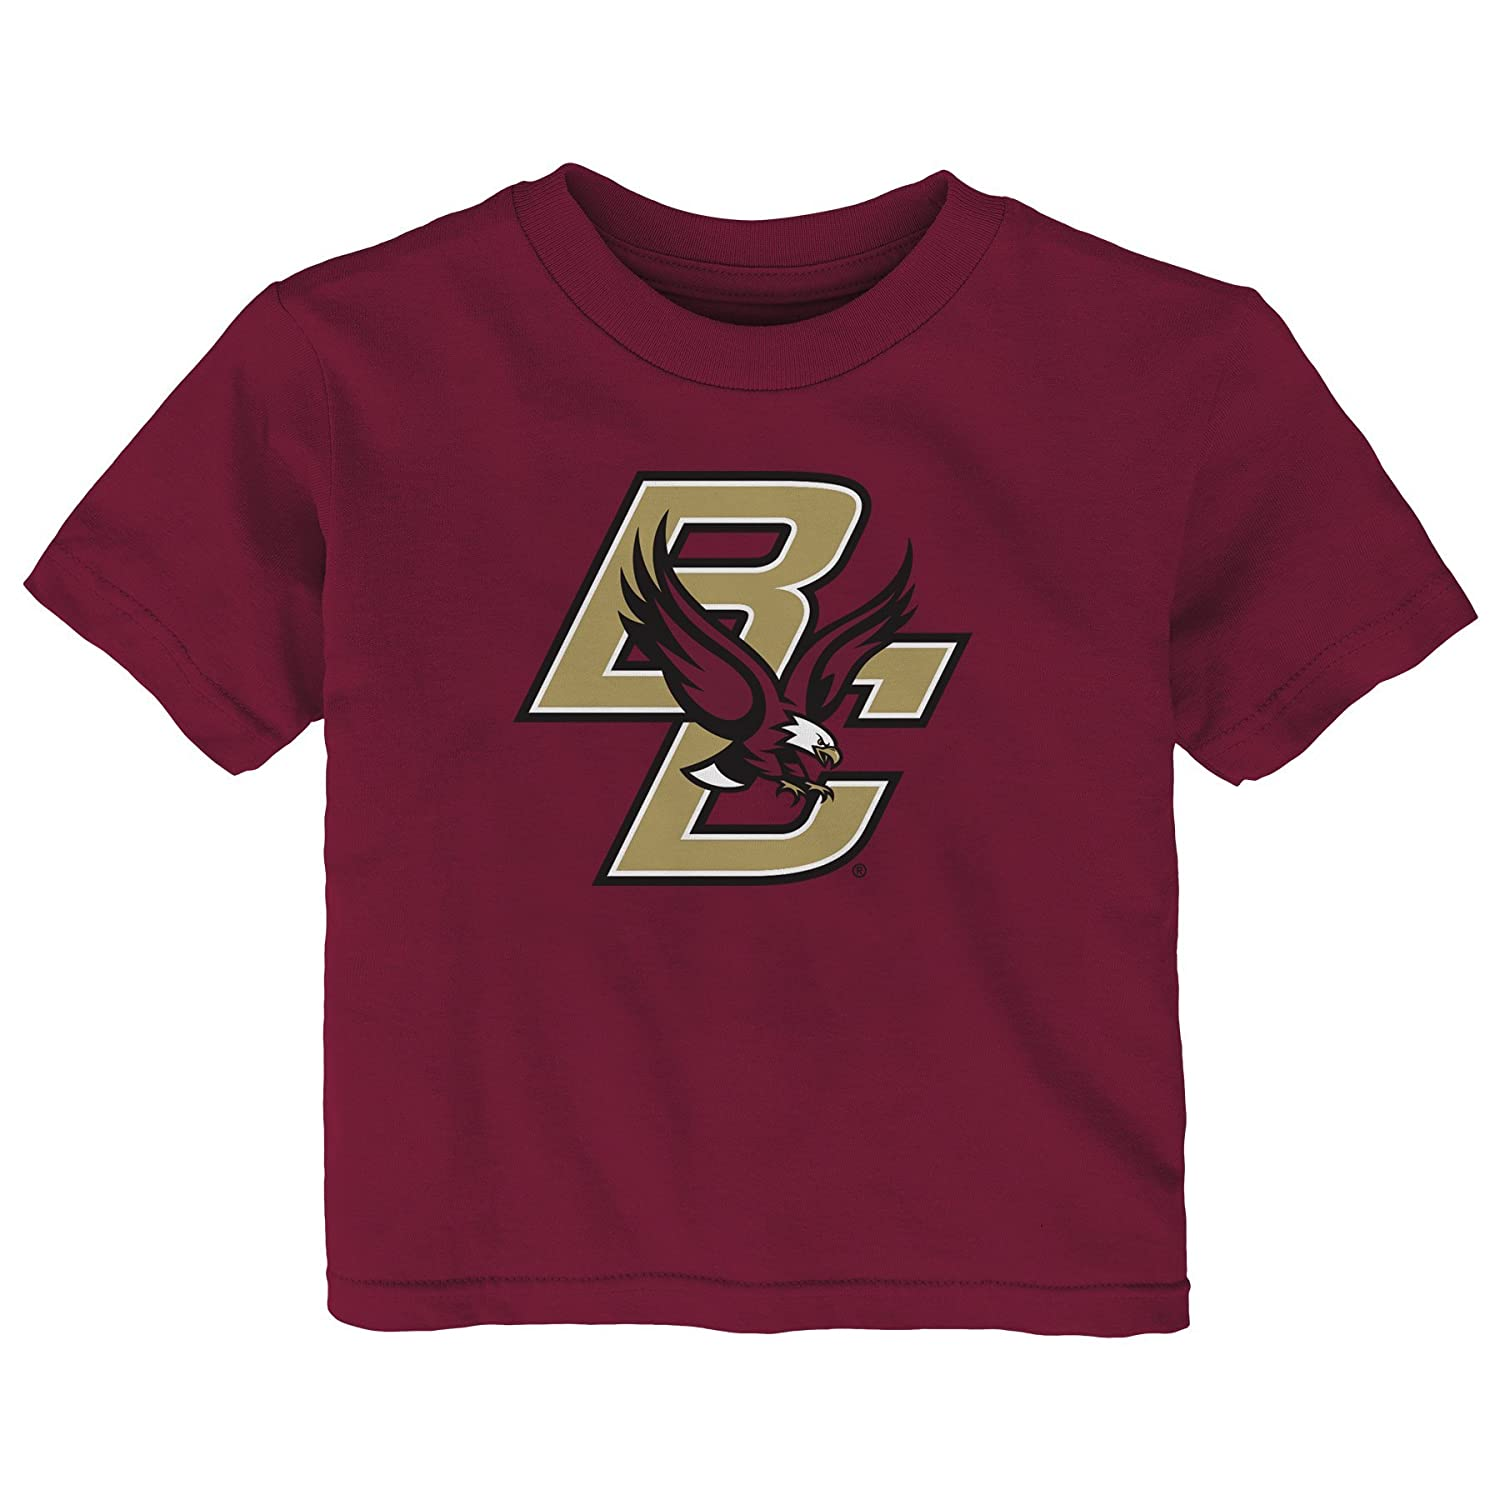 Outerstuff NCAA Boston College Eagles Infant Primary Logo Short Sleeve Tee 18 Months Garnet